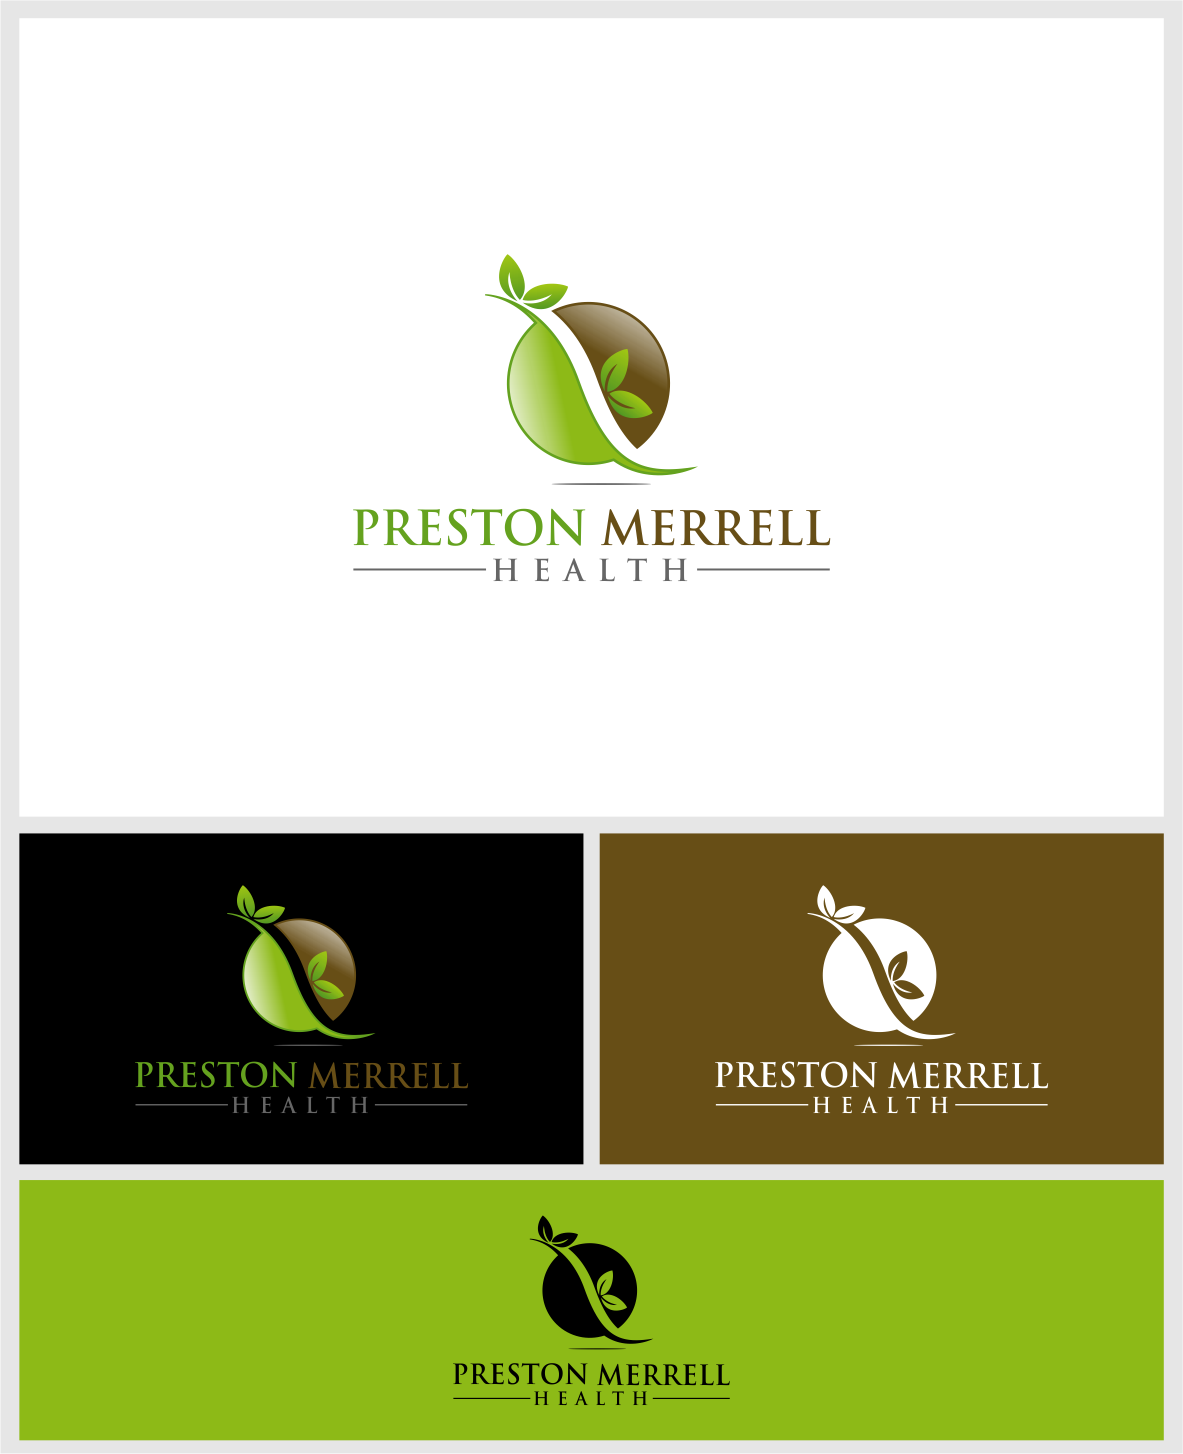 Logo Design by haidu - Entry No. 29 in the Logo Design Contest Creative Logo Design for Preston Merrell Health.